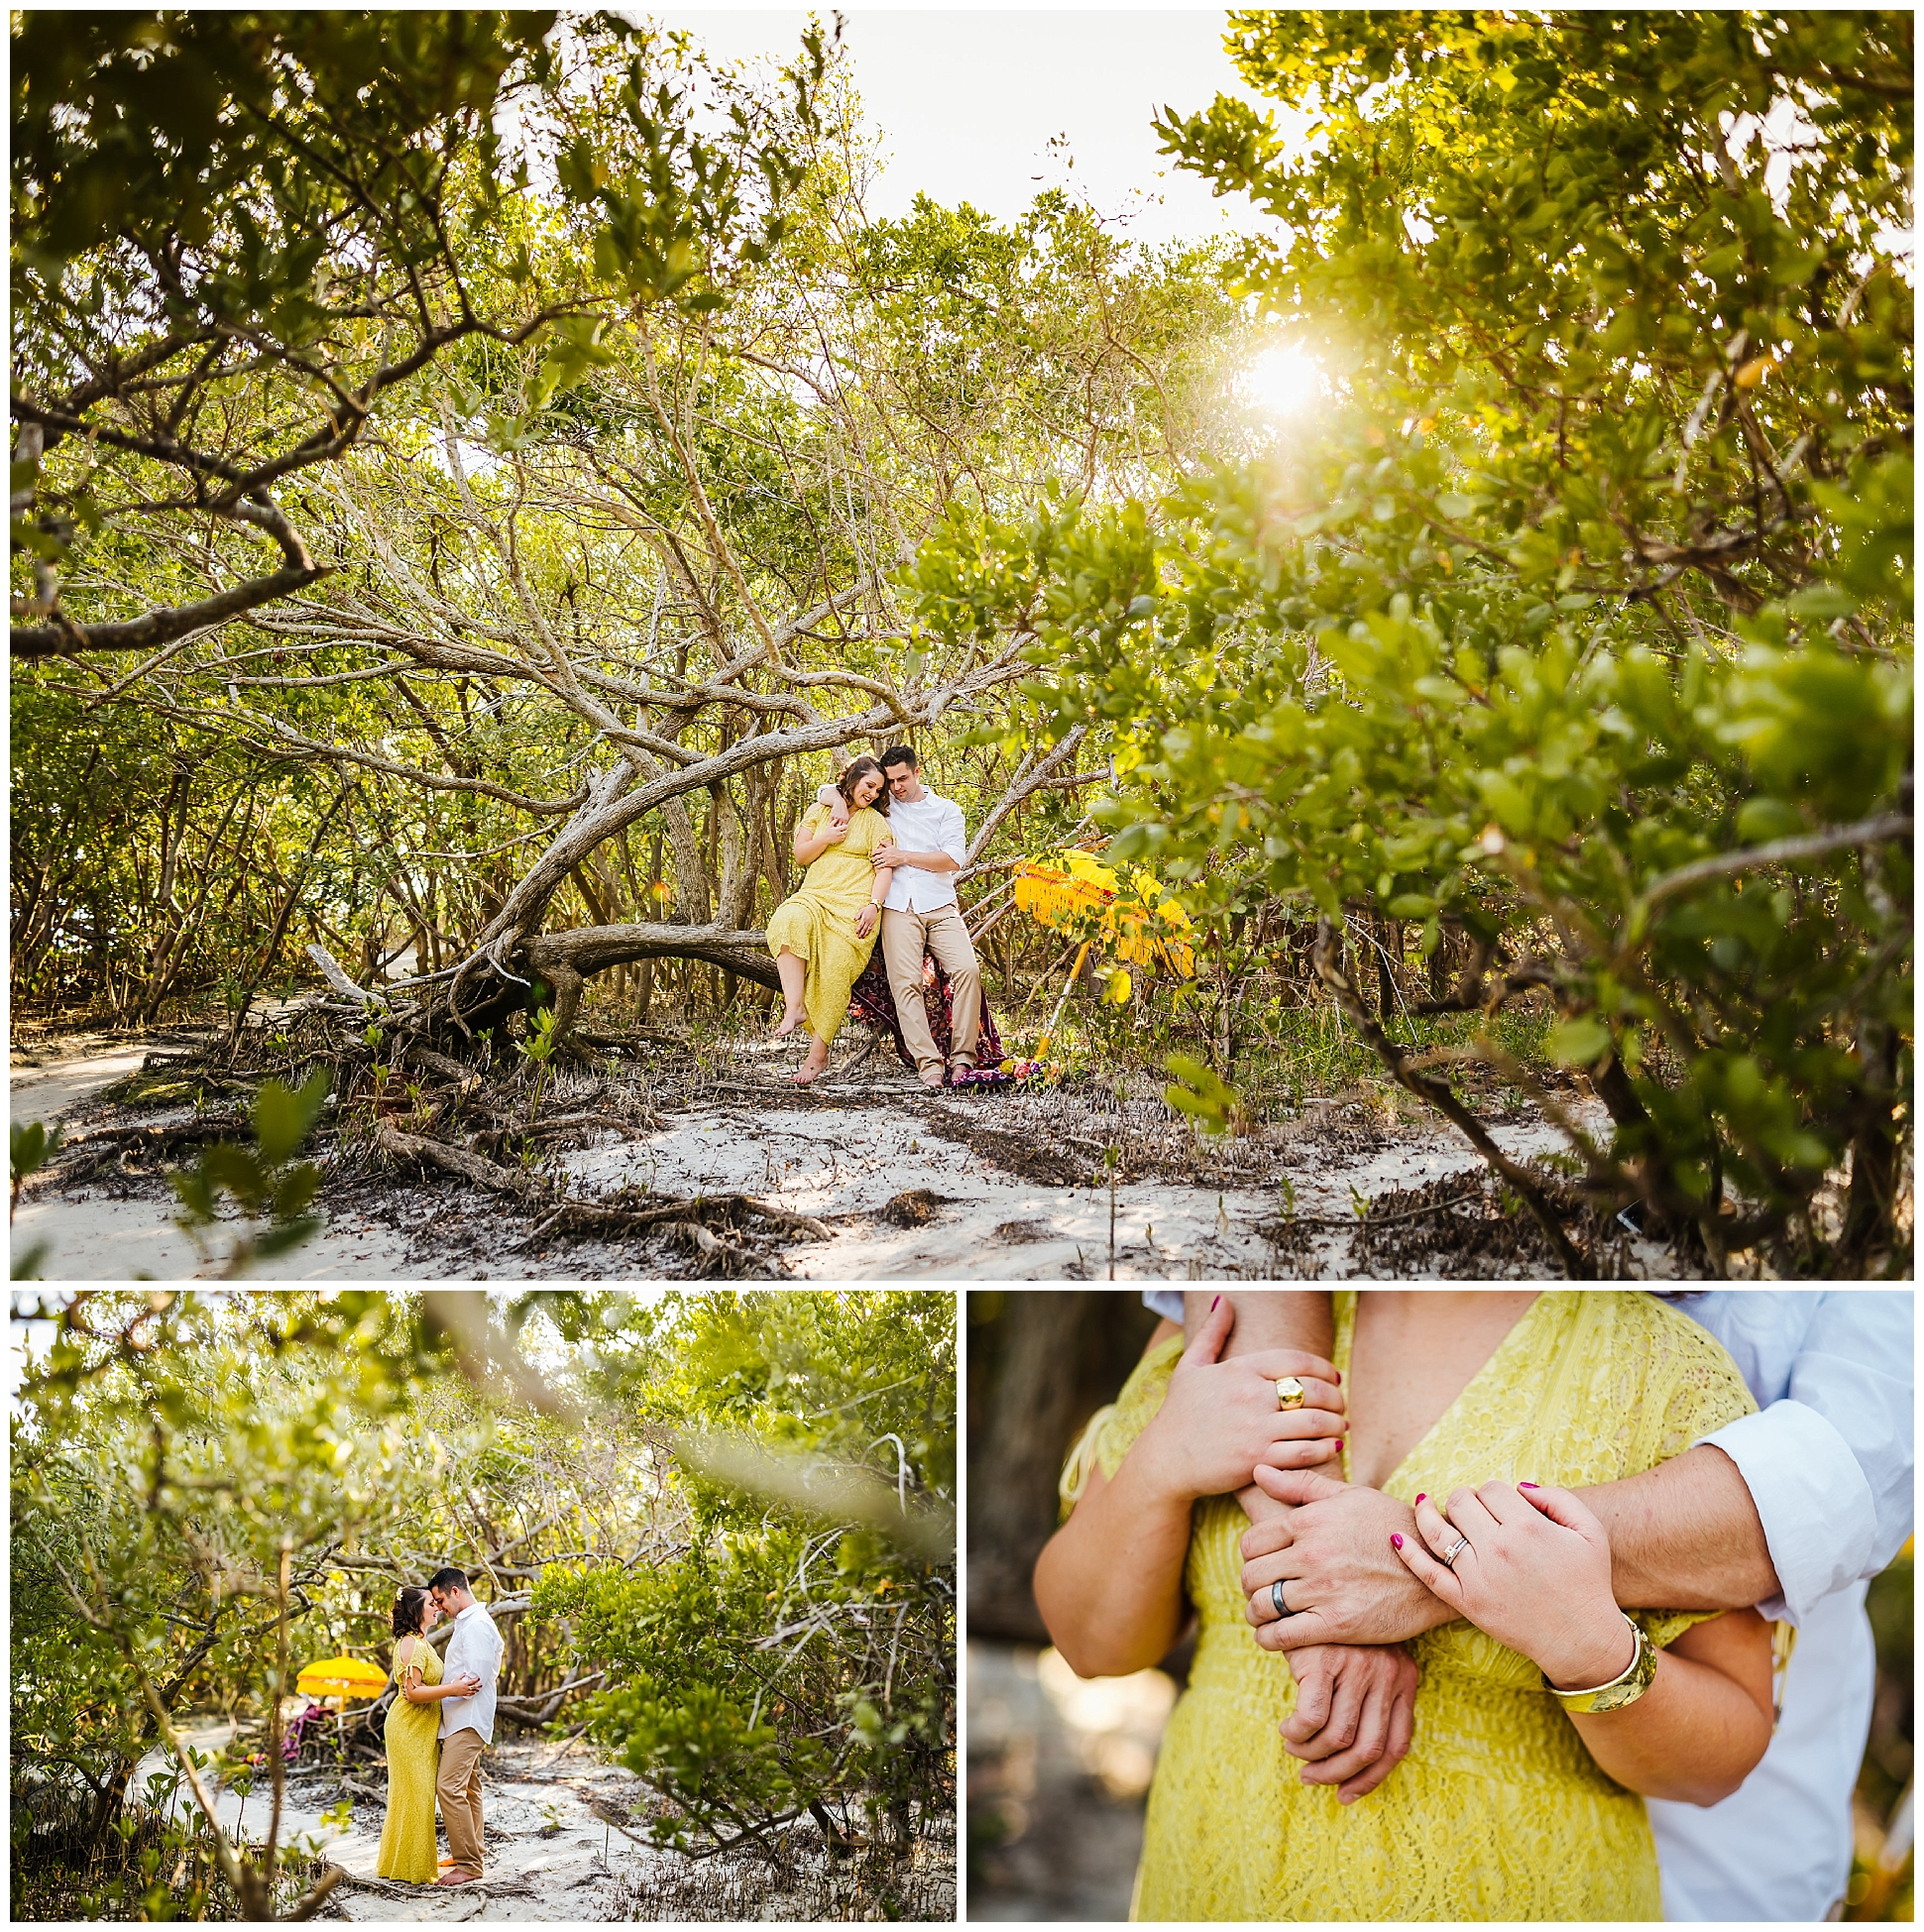 daly-digs-bali-anniversary-styled-shoot1.jpg